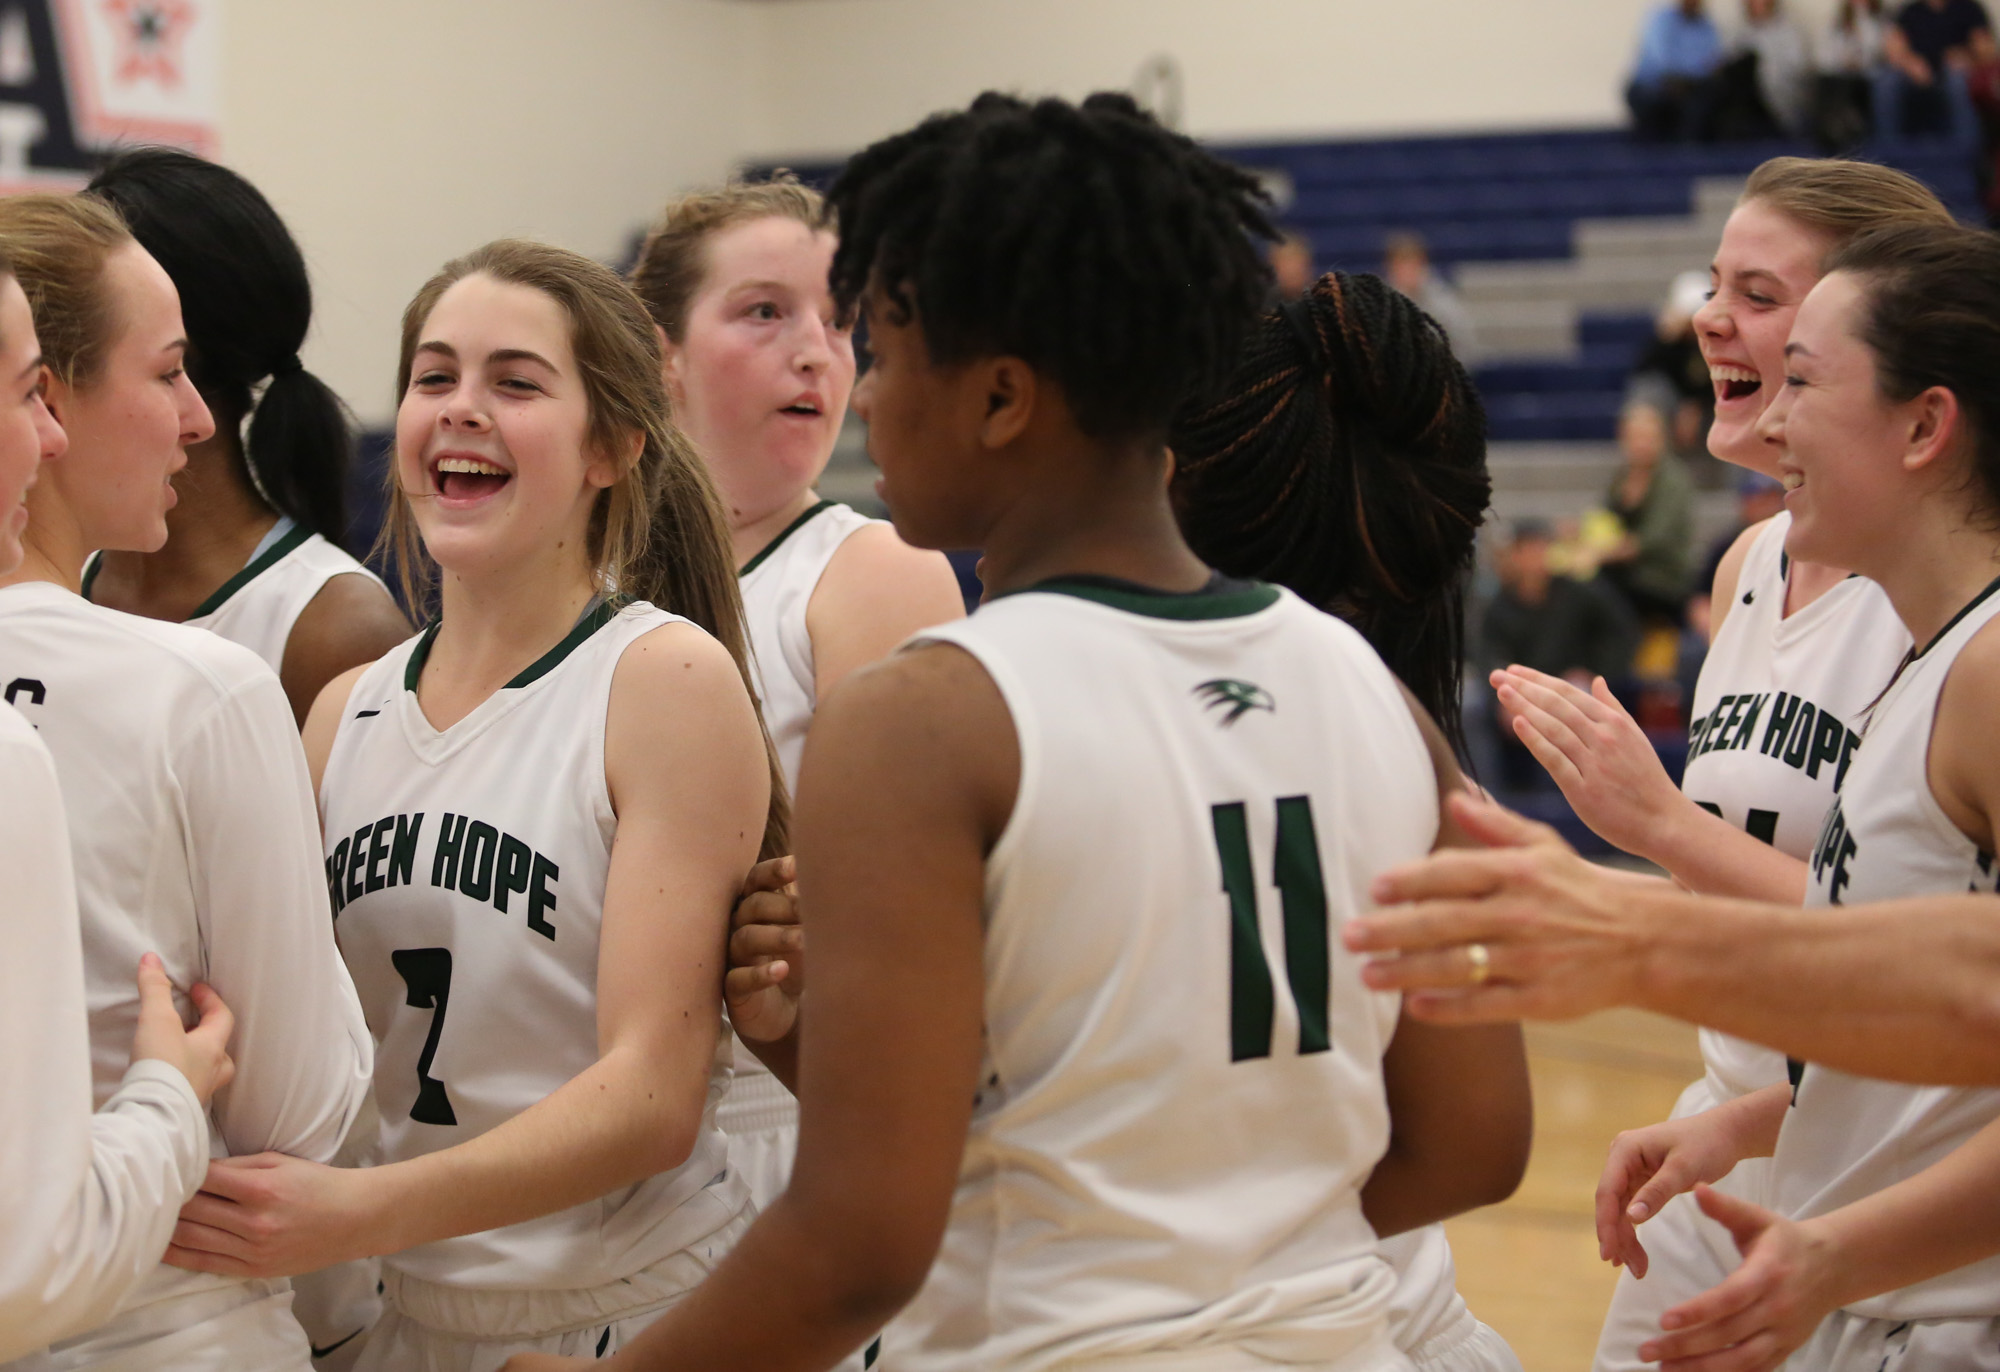 Green Hope girls celebrate after they won against Holly Springs, 50-49, for the Conference Tournament Championship on Feb.17, 2017.